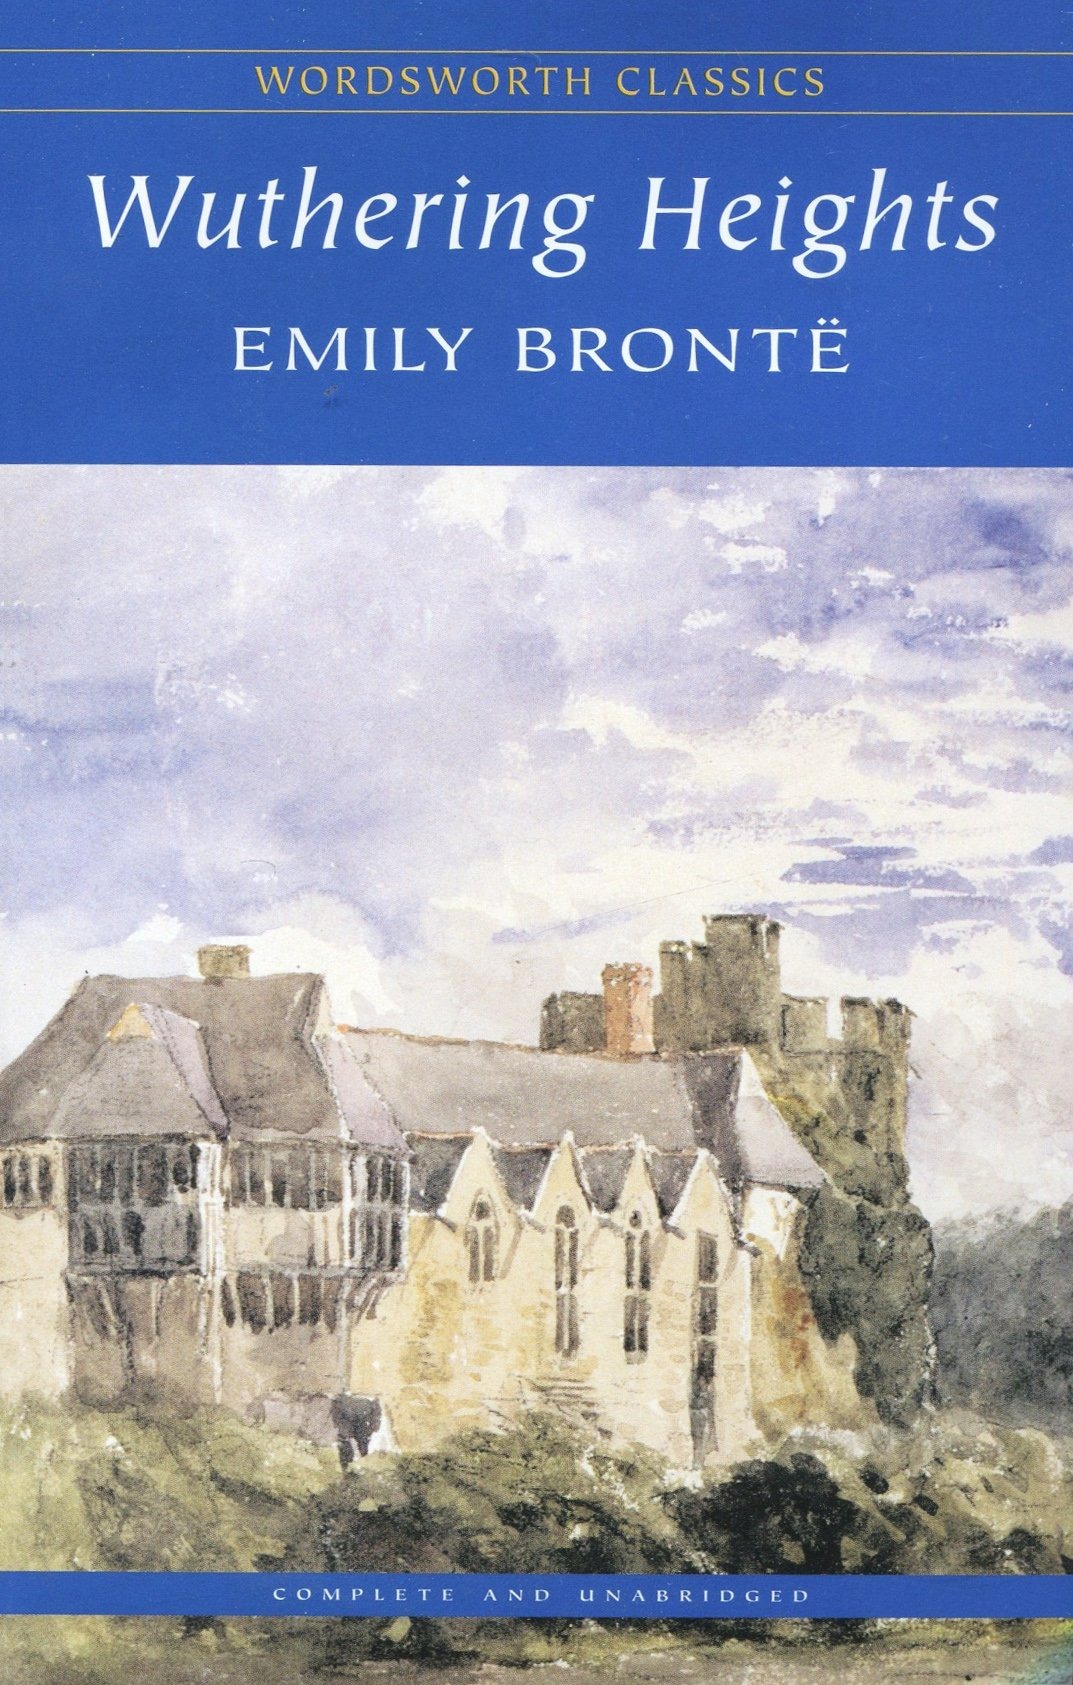 Wuthering Heights)